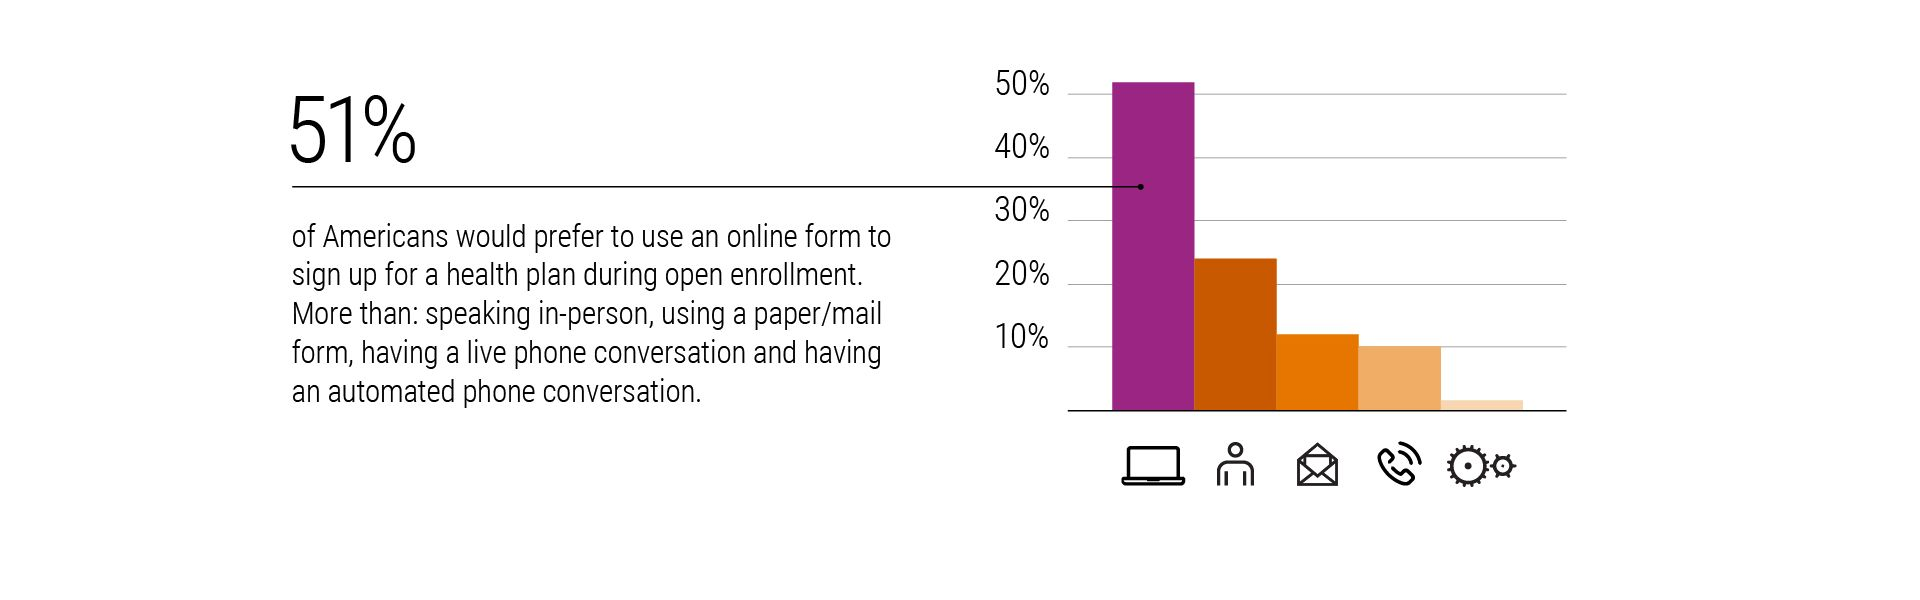 Research from Xerox Services Uncovers Consumer Challenges ahead of Open Enrollment Period